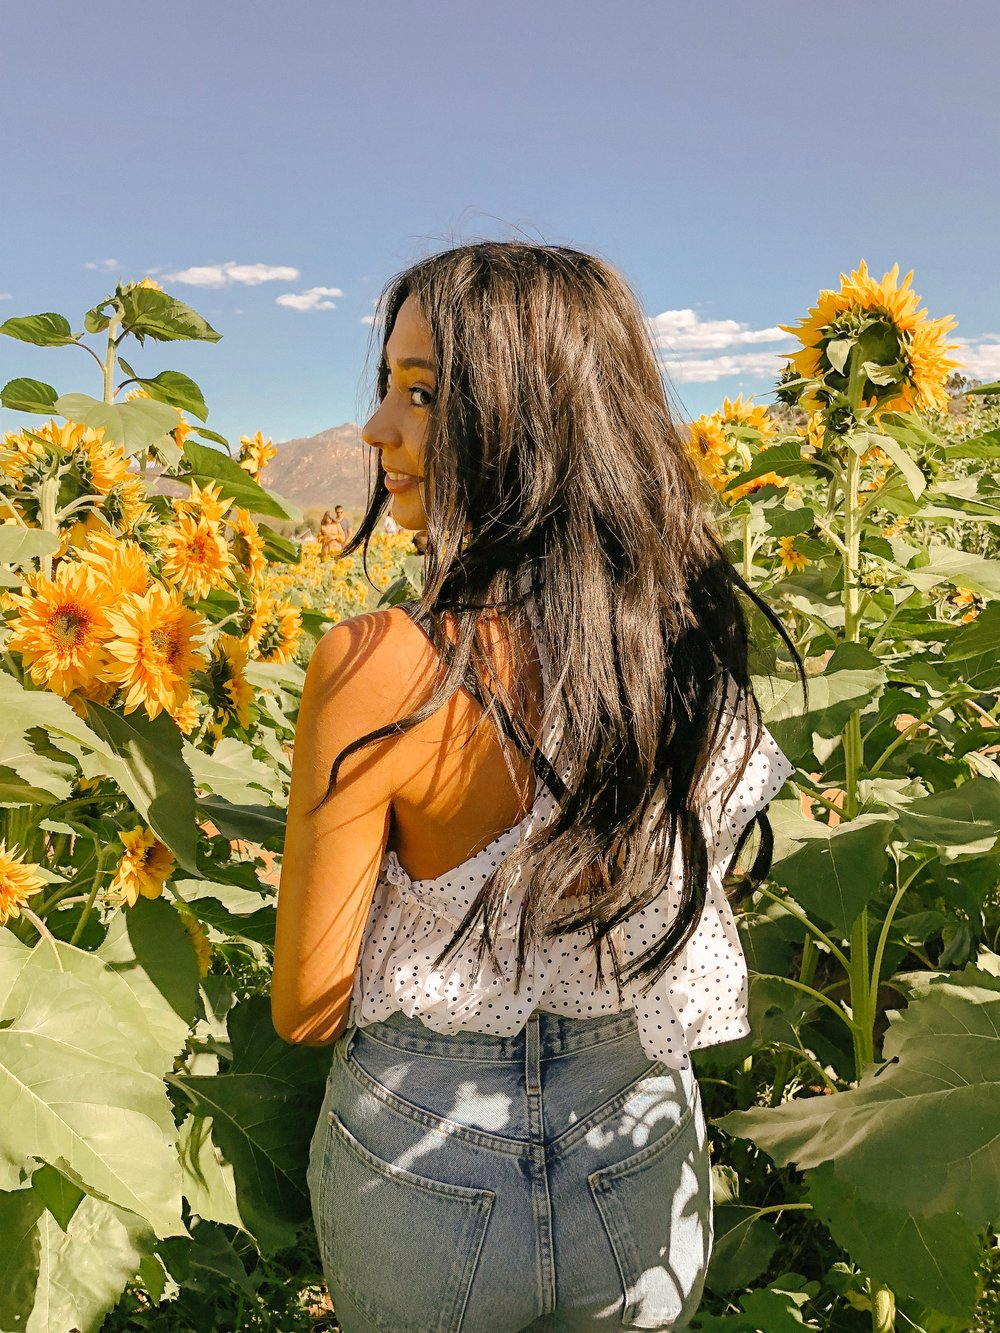 Secret Spot: Once you get to the tall sunflowers, a few rows up there is a dirt/mud path that leads to a gap that will surround you with sunflowers! The lighting in this gap is so good, we took a few photos here and they turned out great!